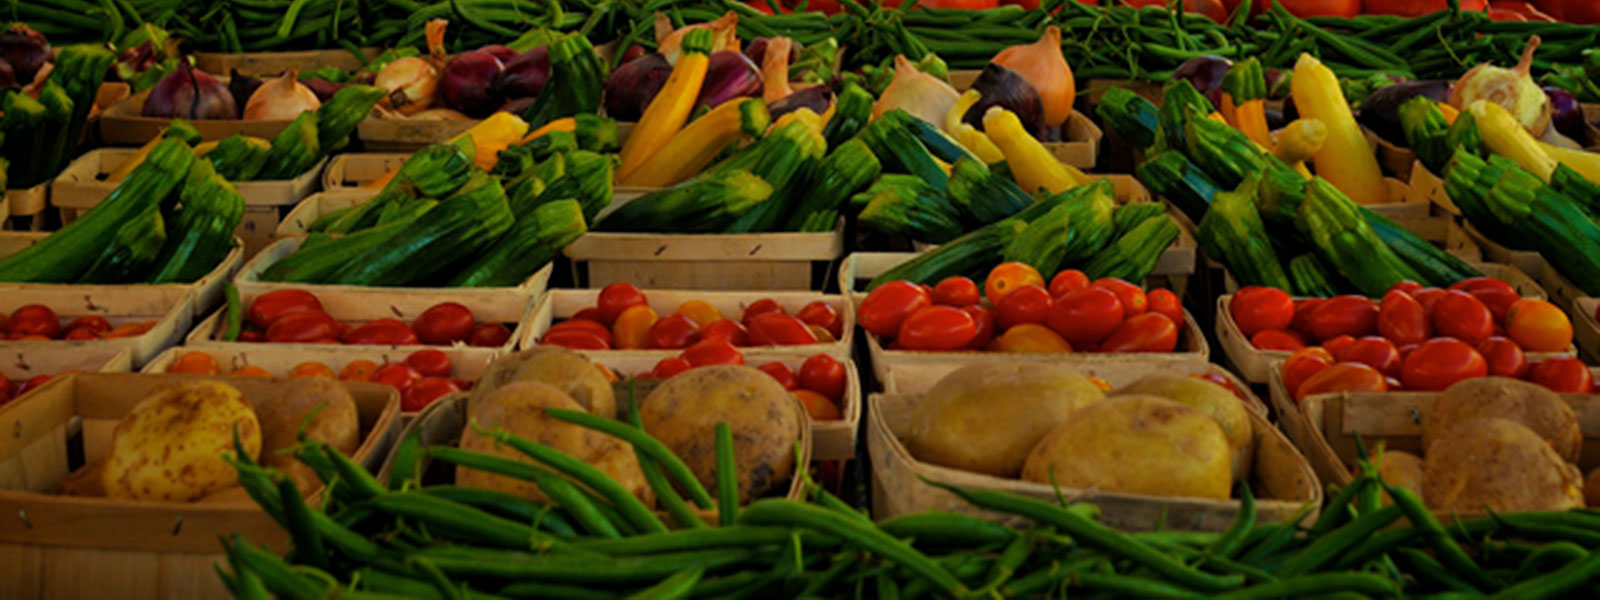 Farmers-Markets-Produce-Crop